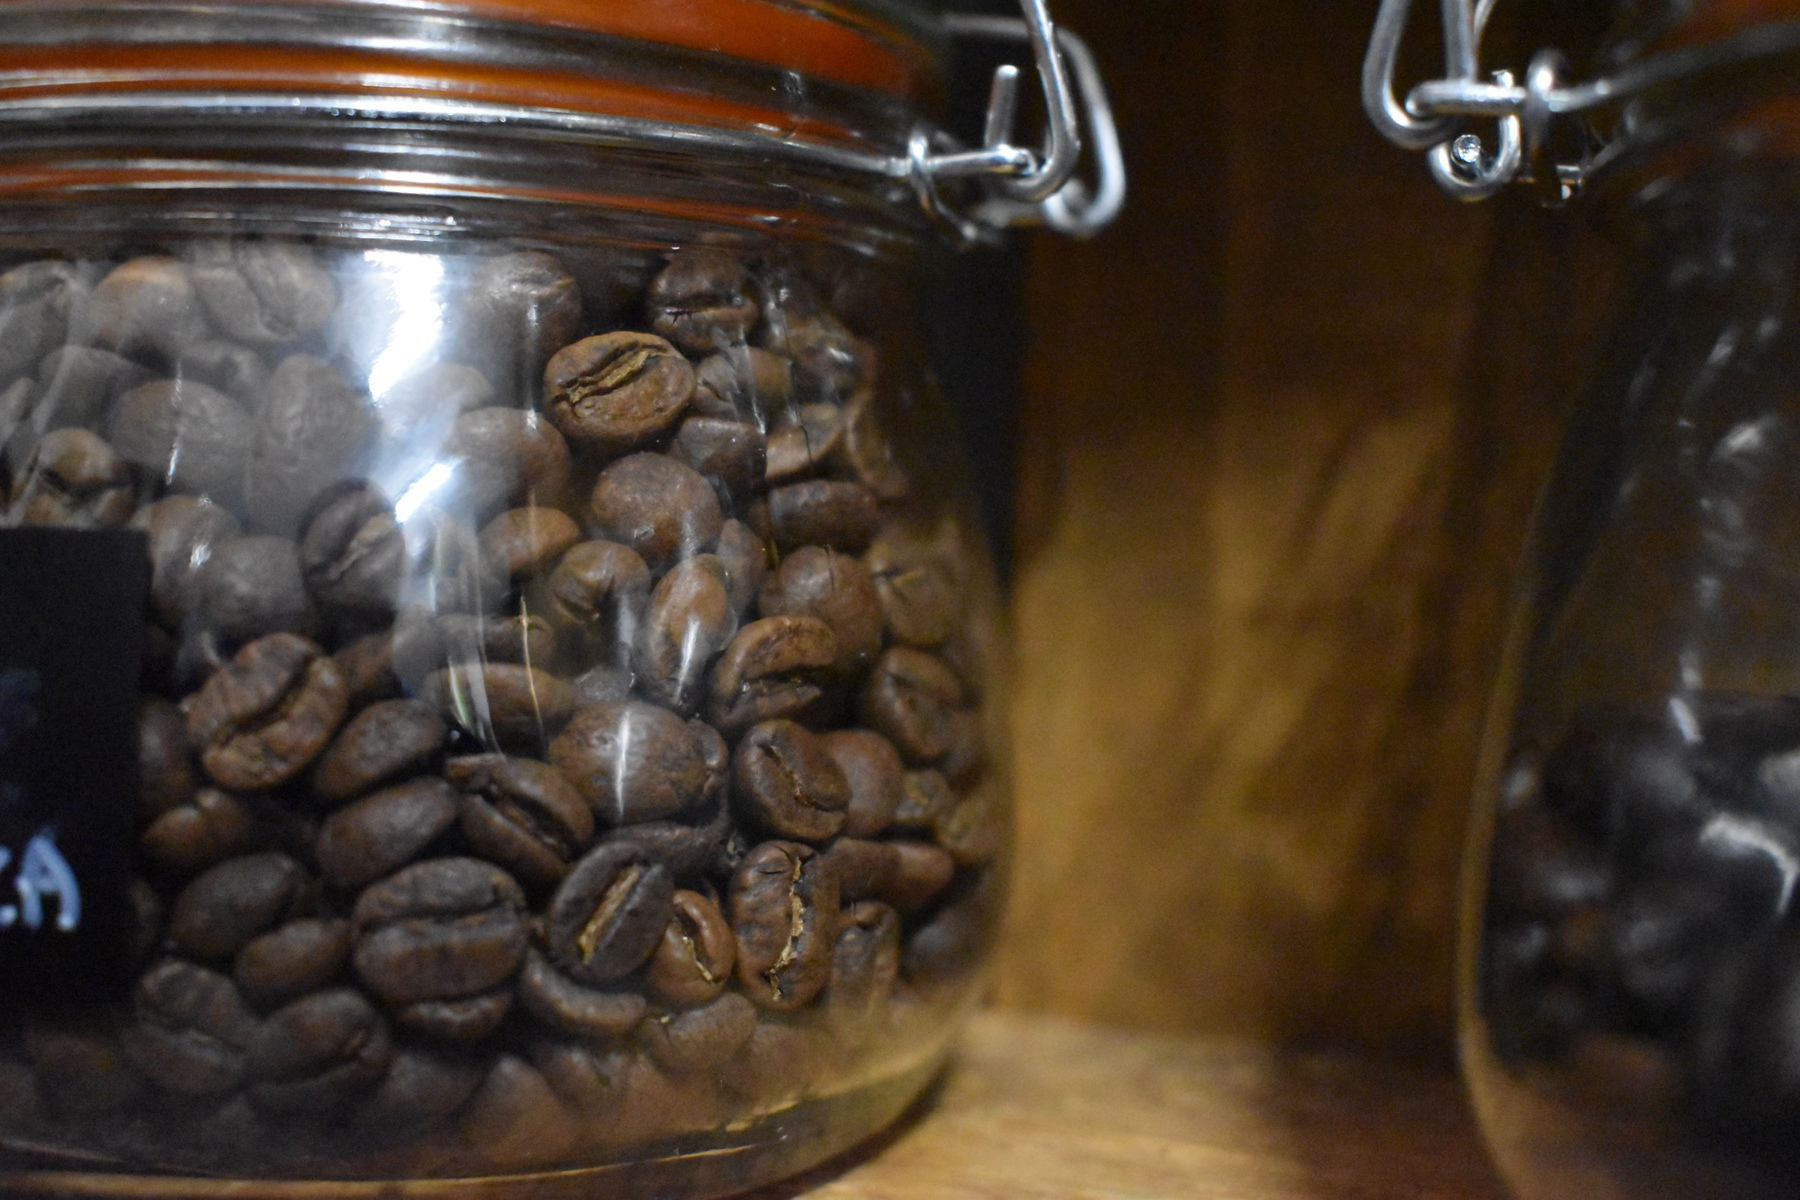 Close-up on a jar of coffee beans.